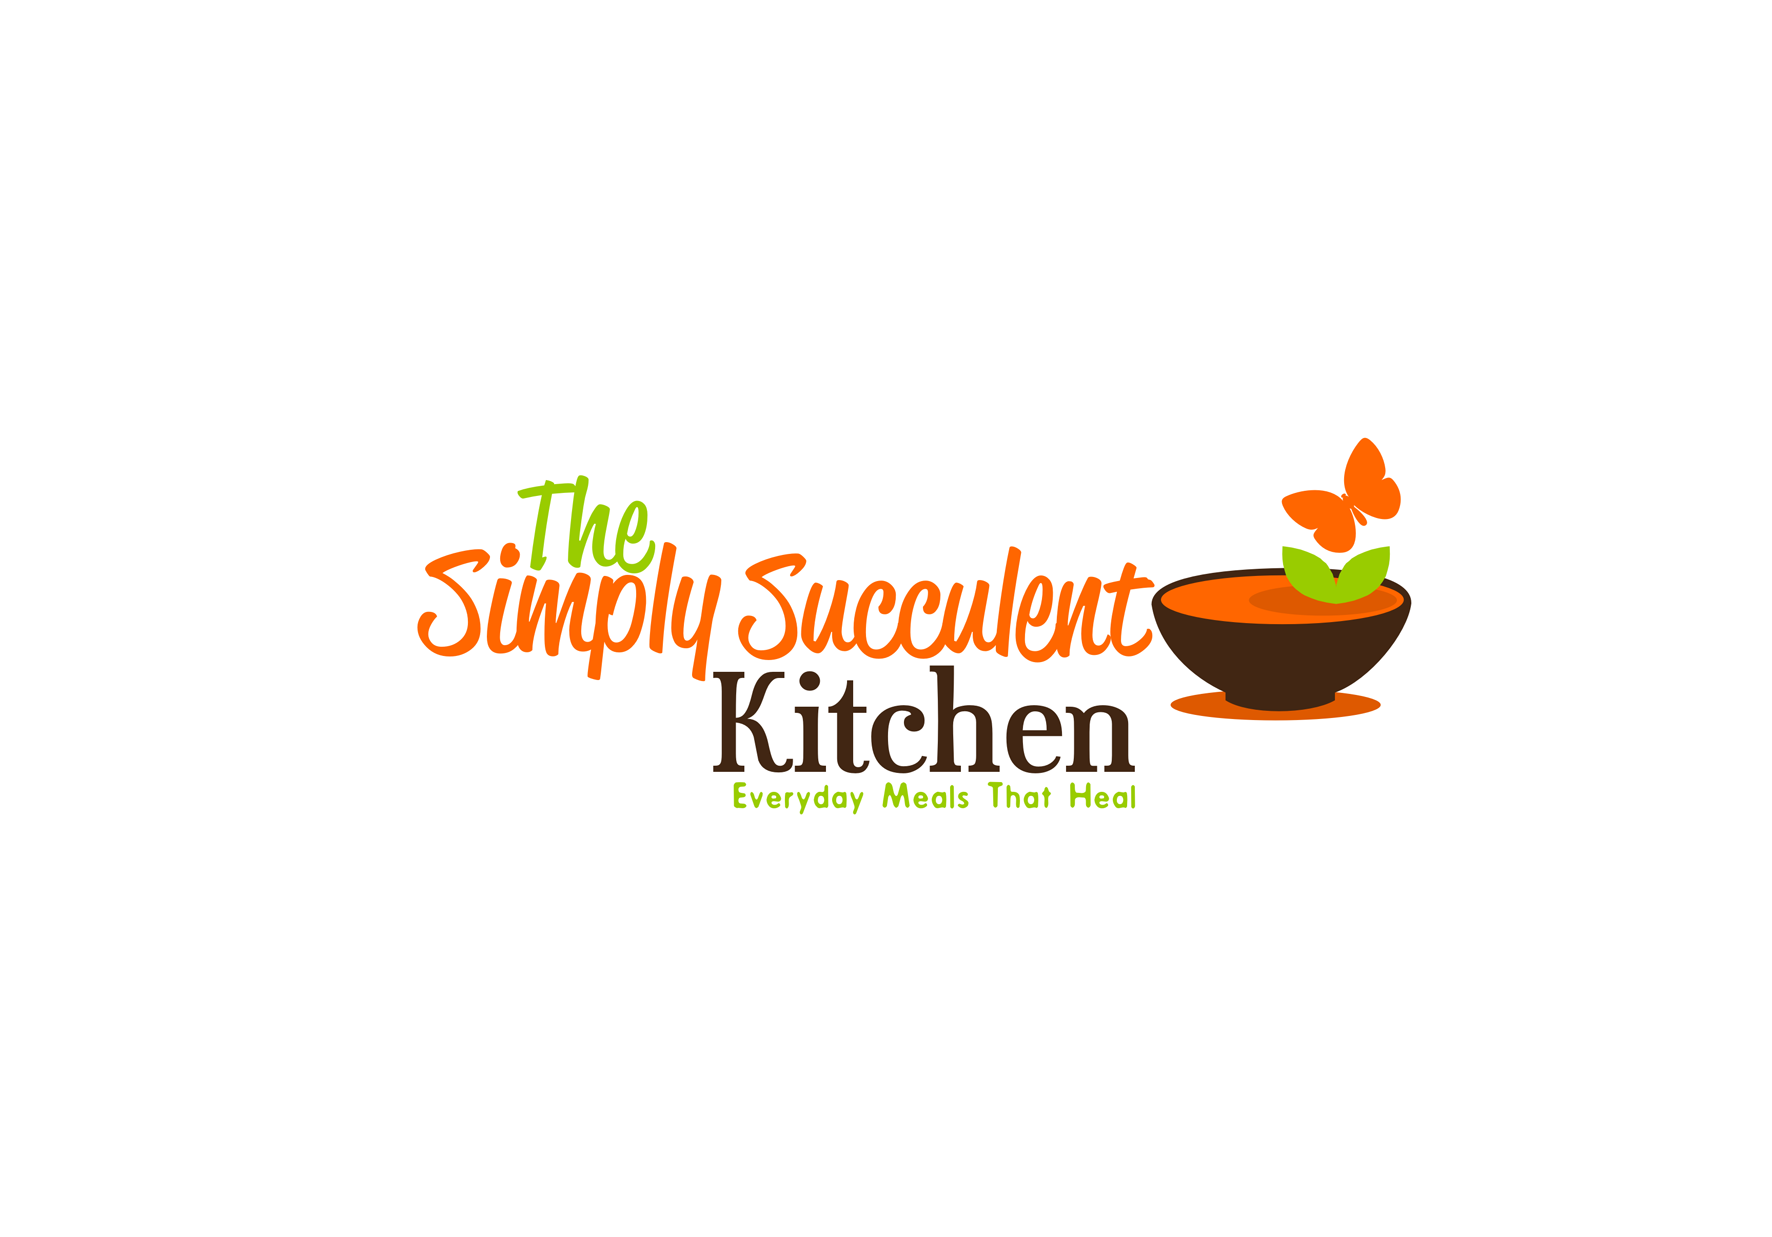 The Simply Succulent Kitchen needs a new logo